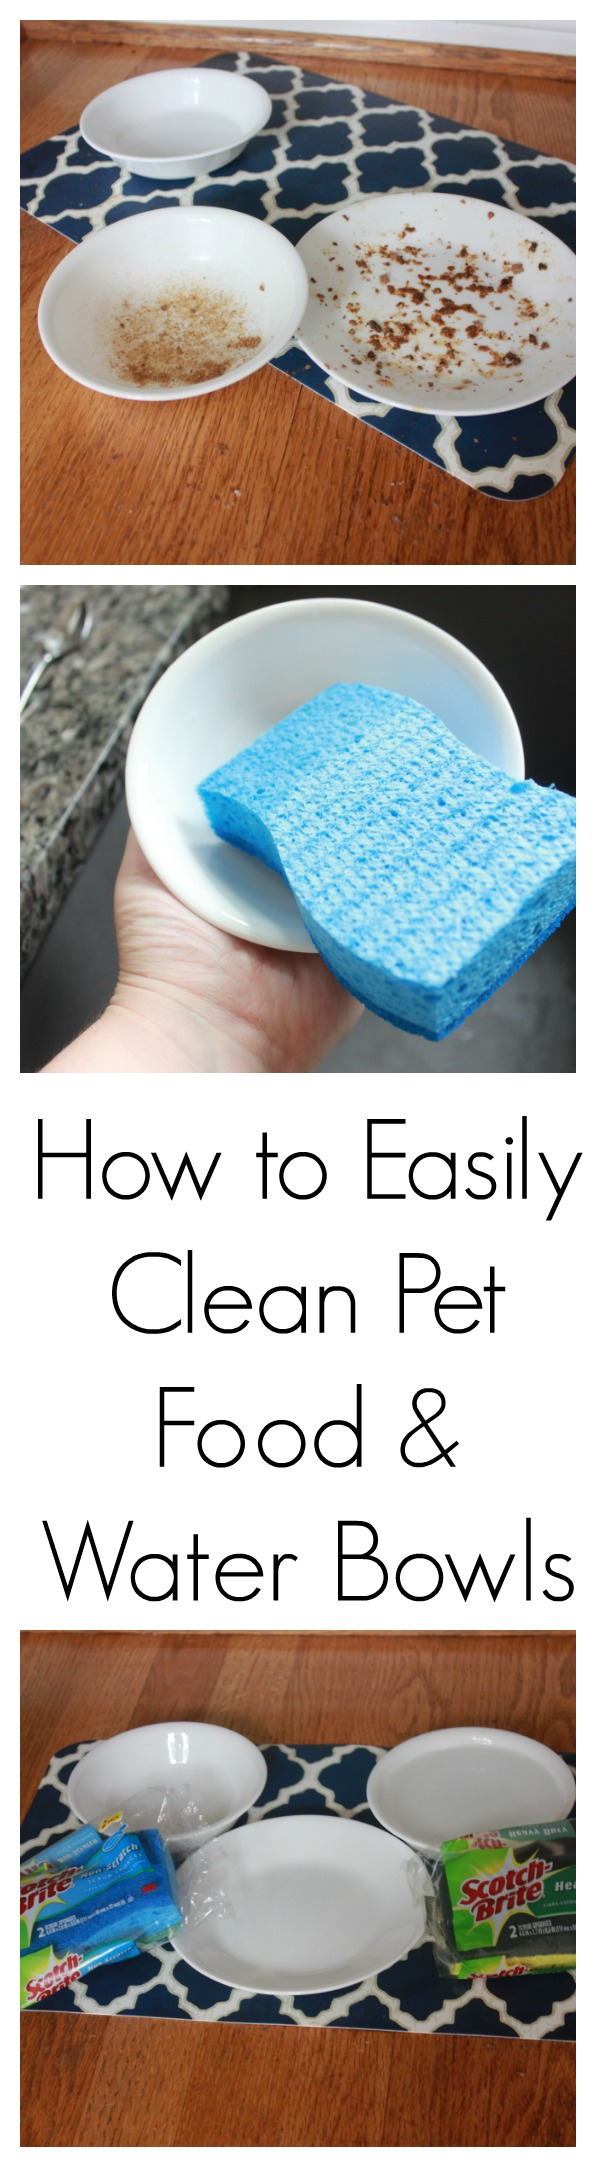 How to Easily Clean Pet Food and Water Bowls